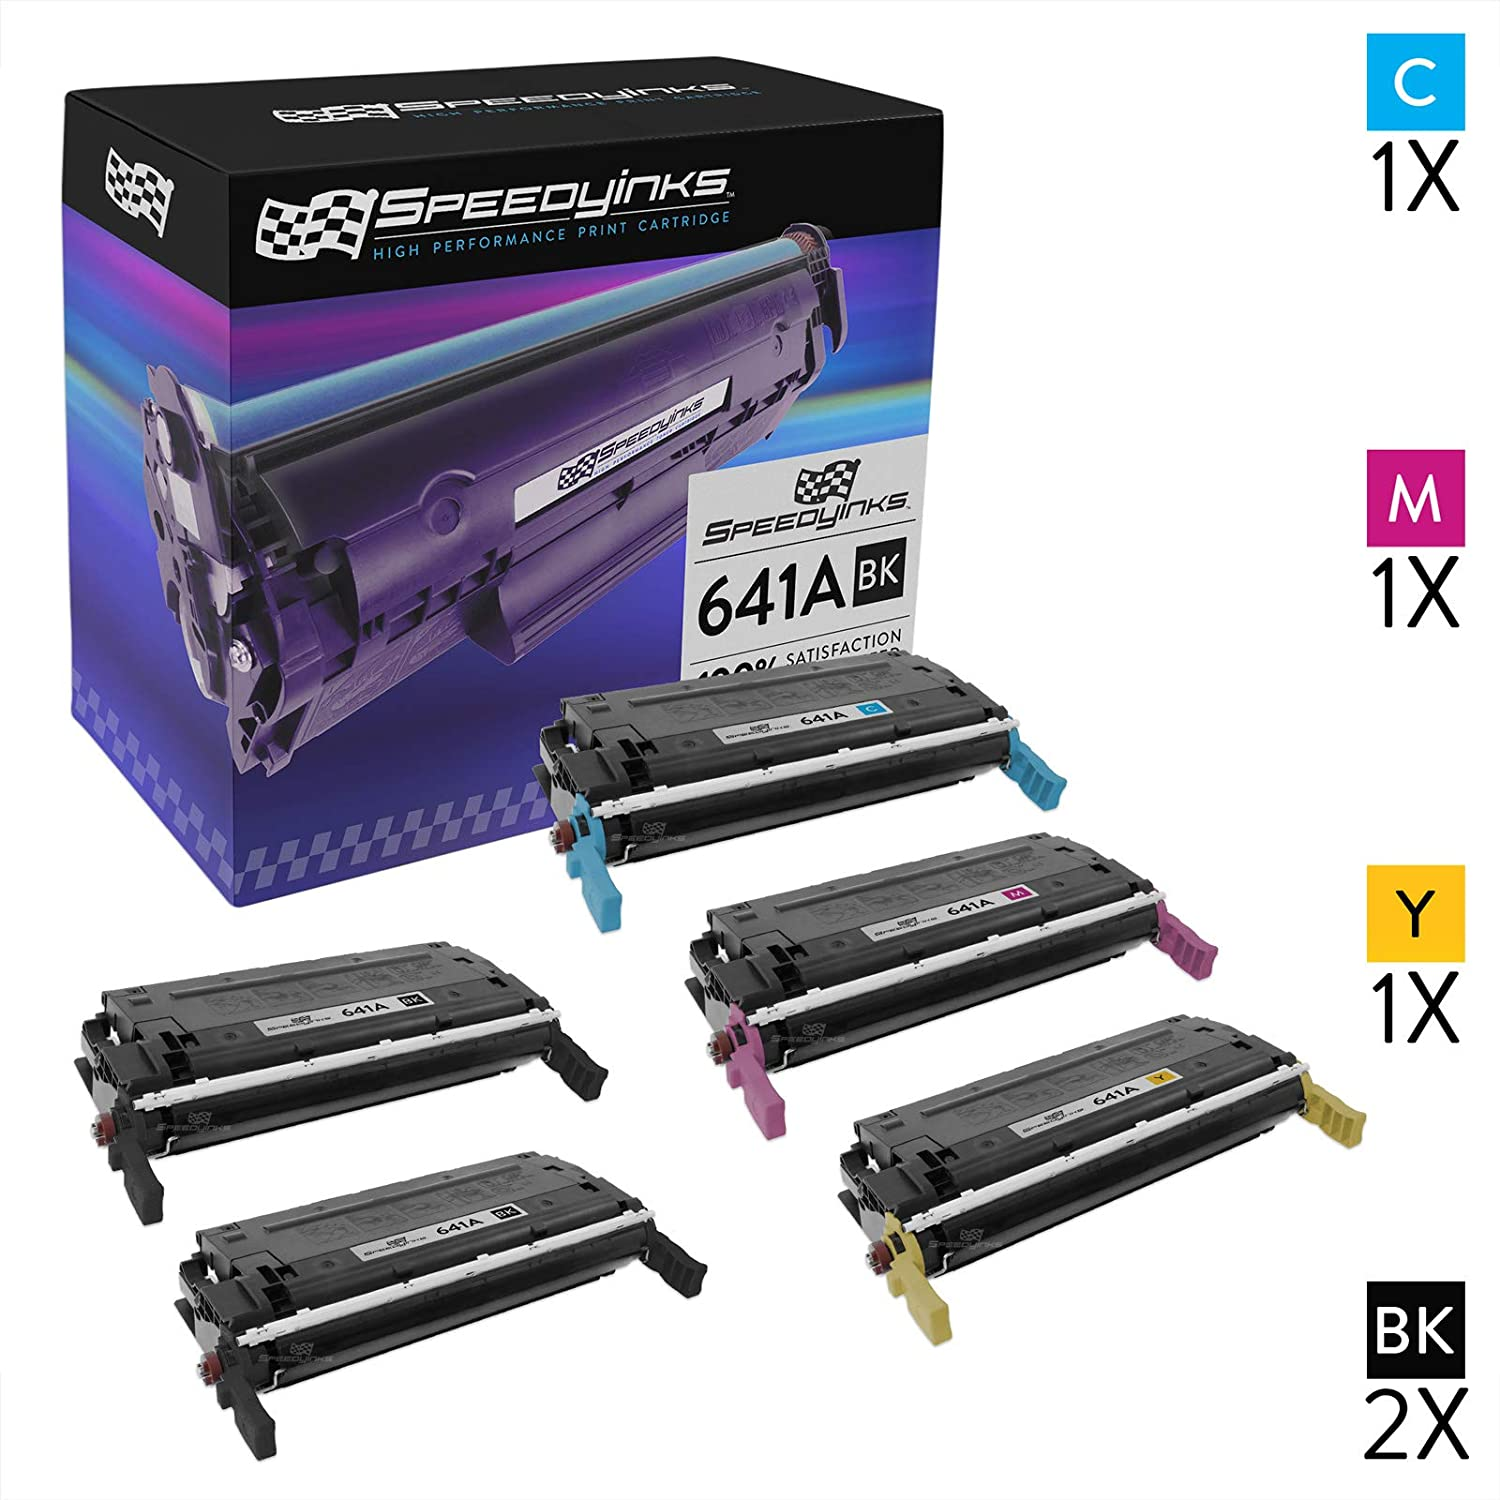 Speedy Inks Remanufactured Toner Cartridge Replacement for HP 641A (2 Black, 1 Cyan, 1 Magenta, 1 Yellow, 5-Pack)